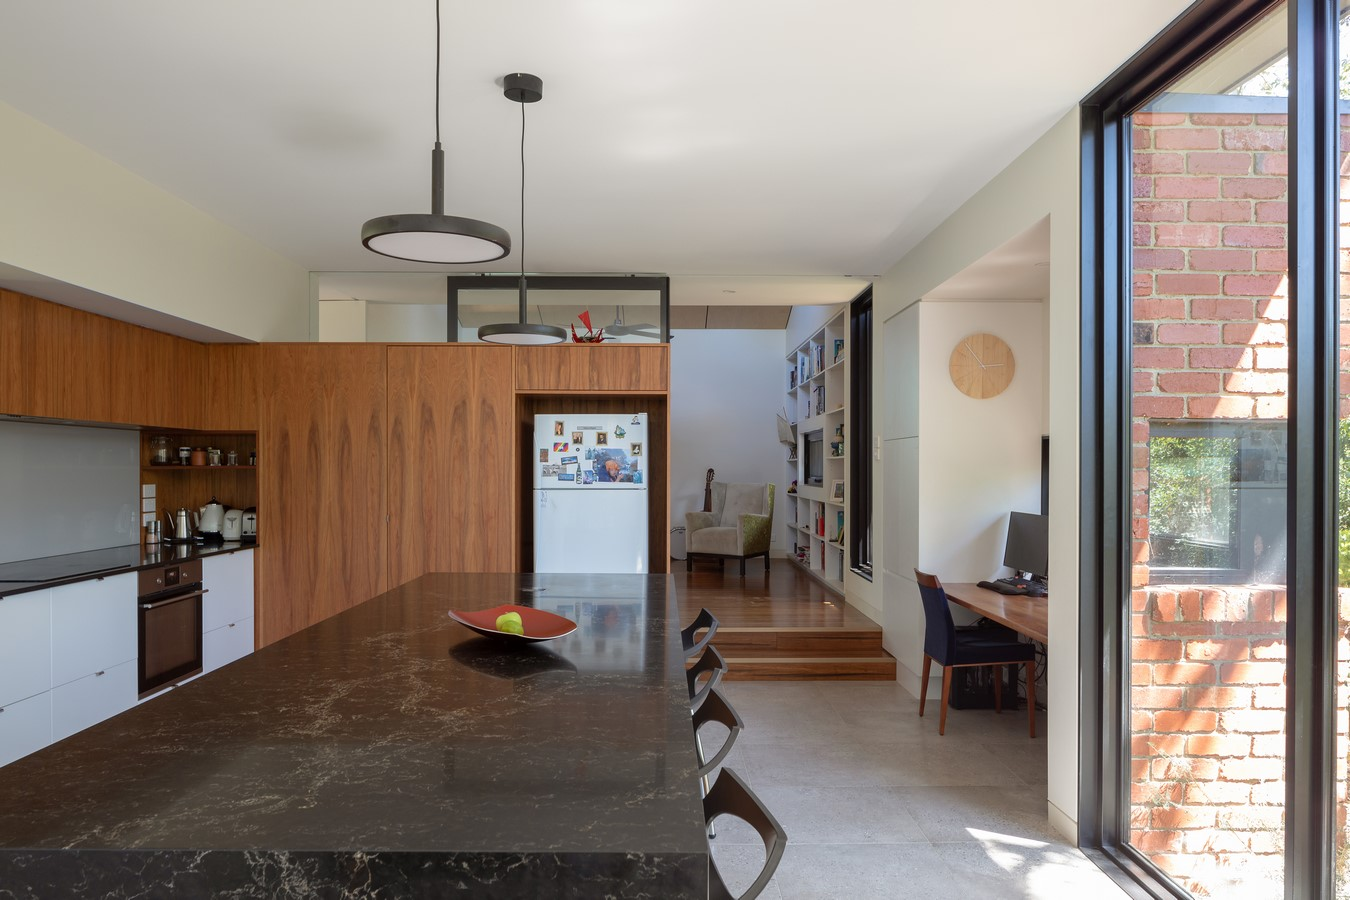 5083 Courtyard House by Rob Henry Architects: Sheet 1